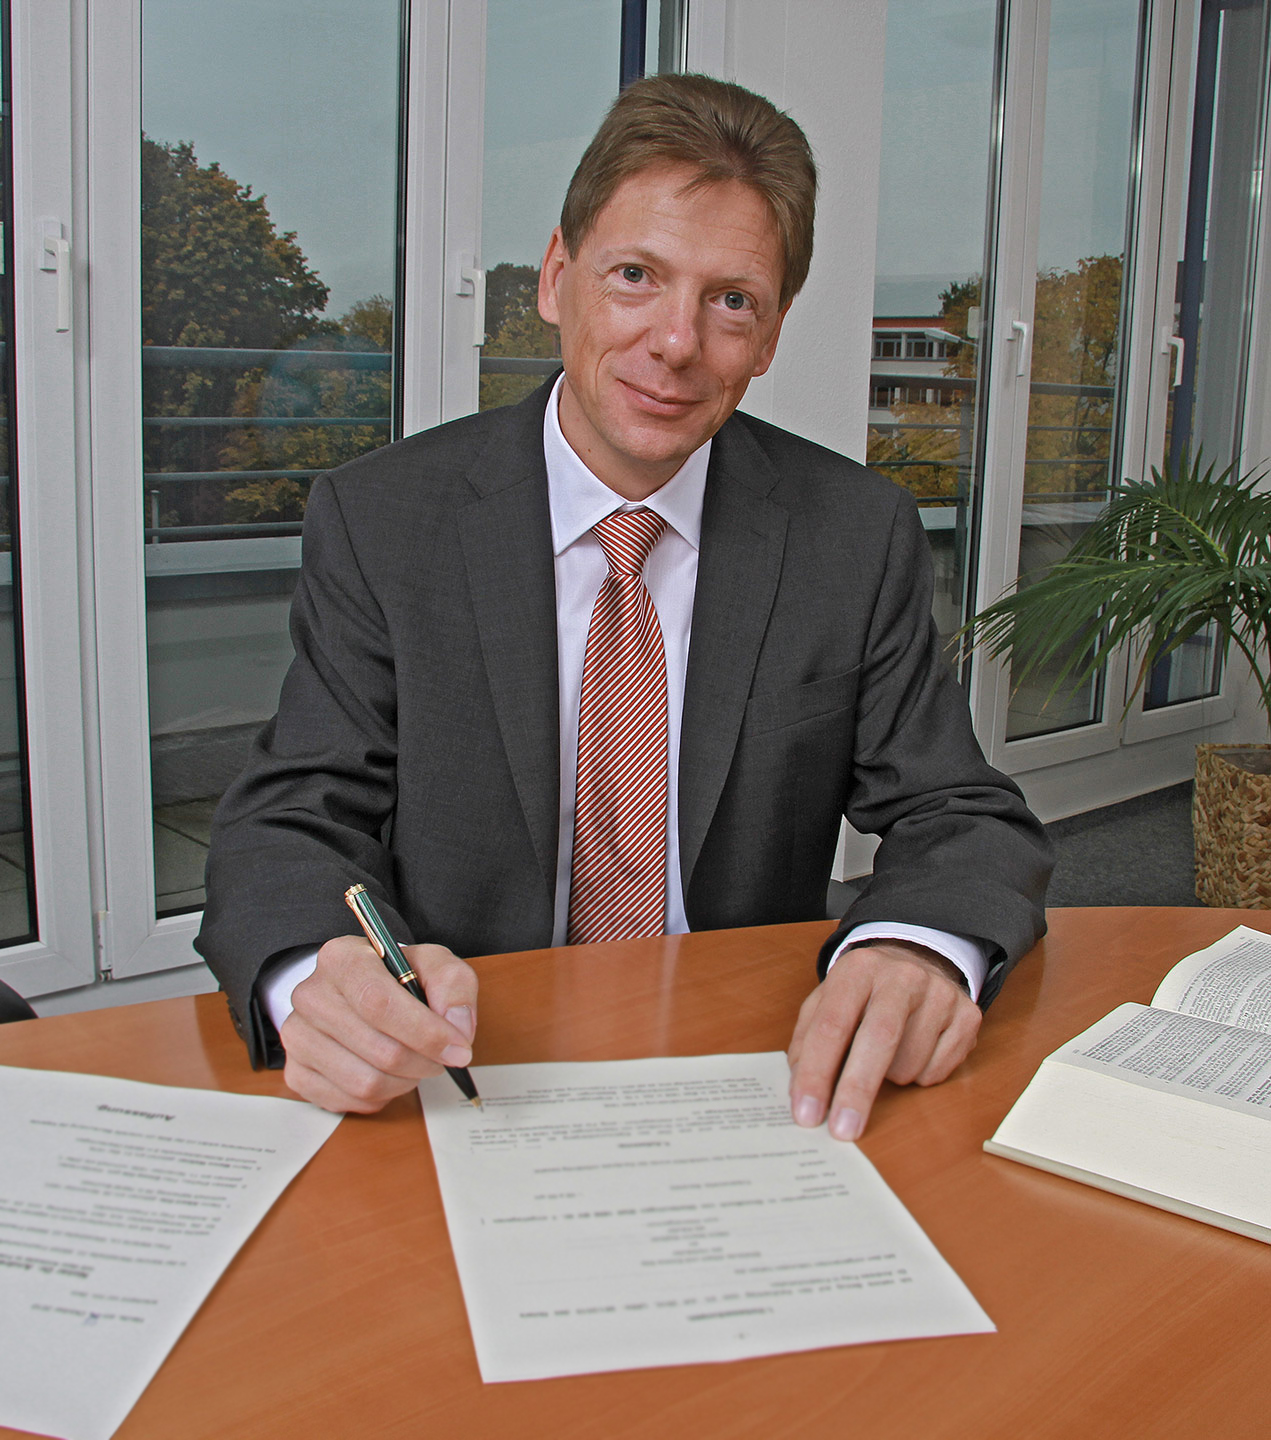 Dr. Andreas Frey